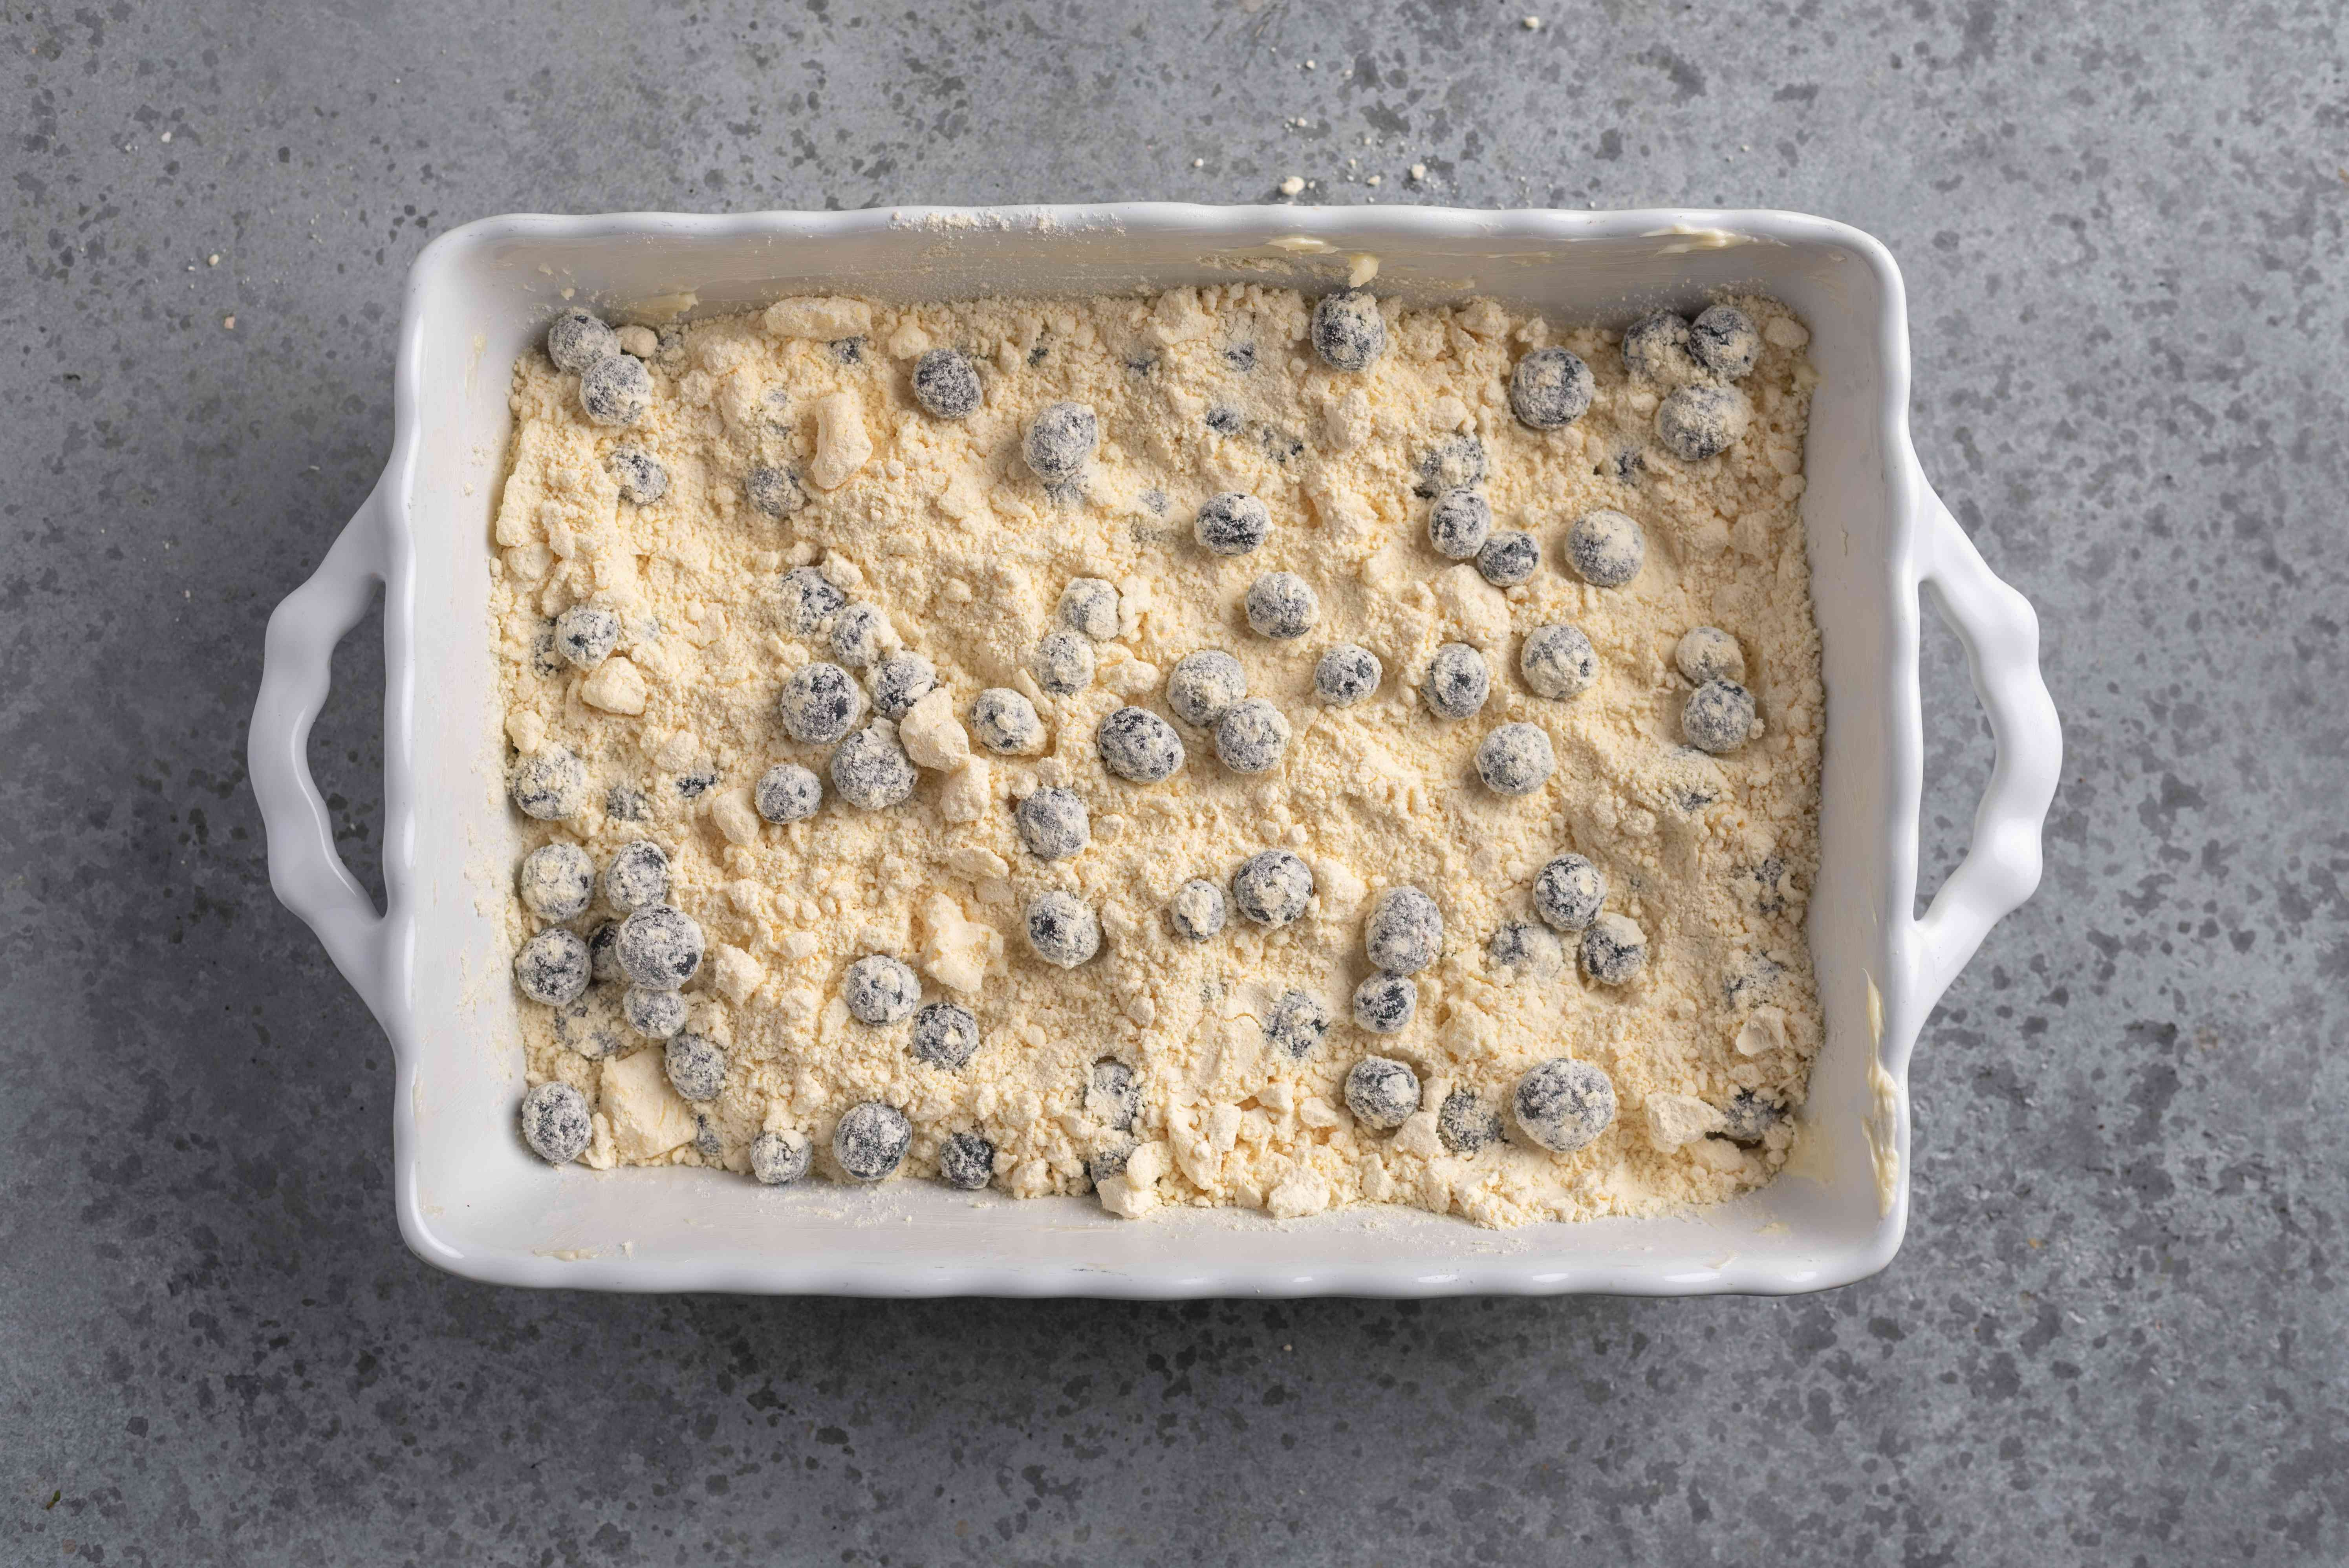 Blueberries with the butter and flour mixture in the baking dish